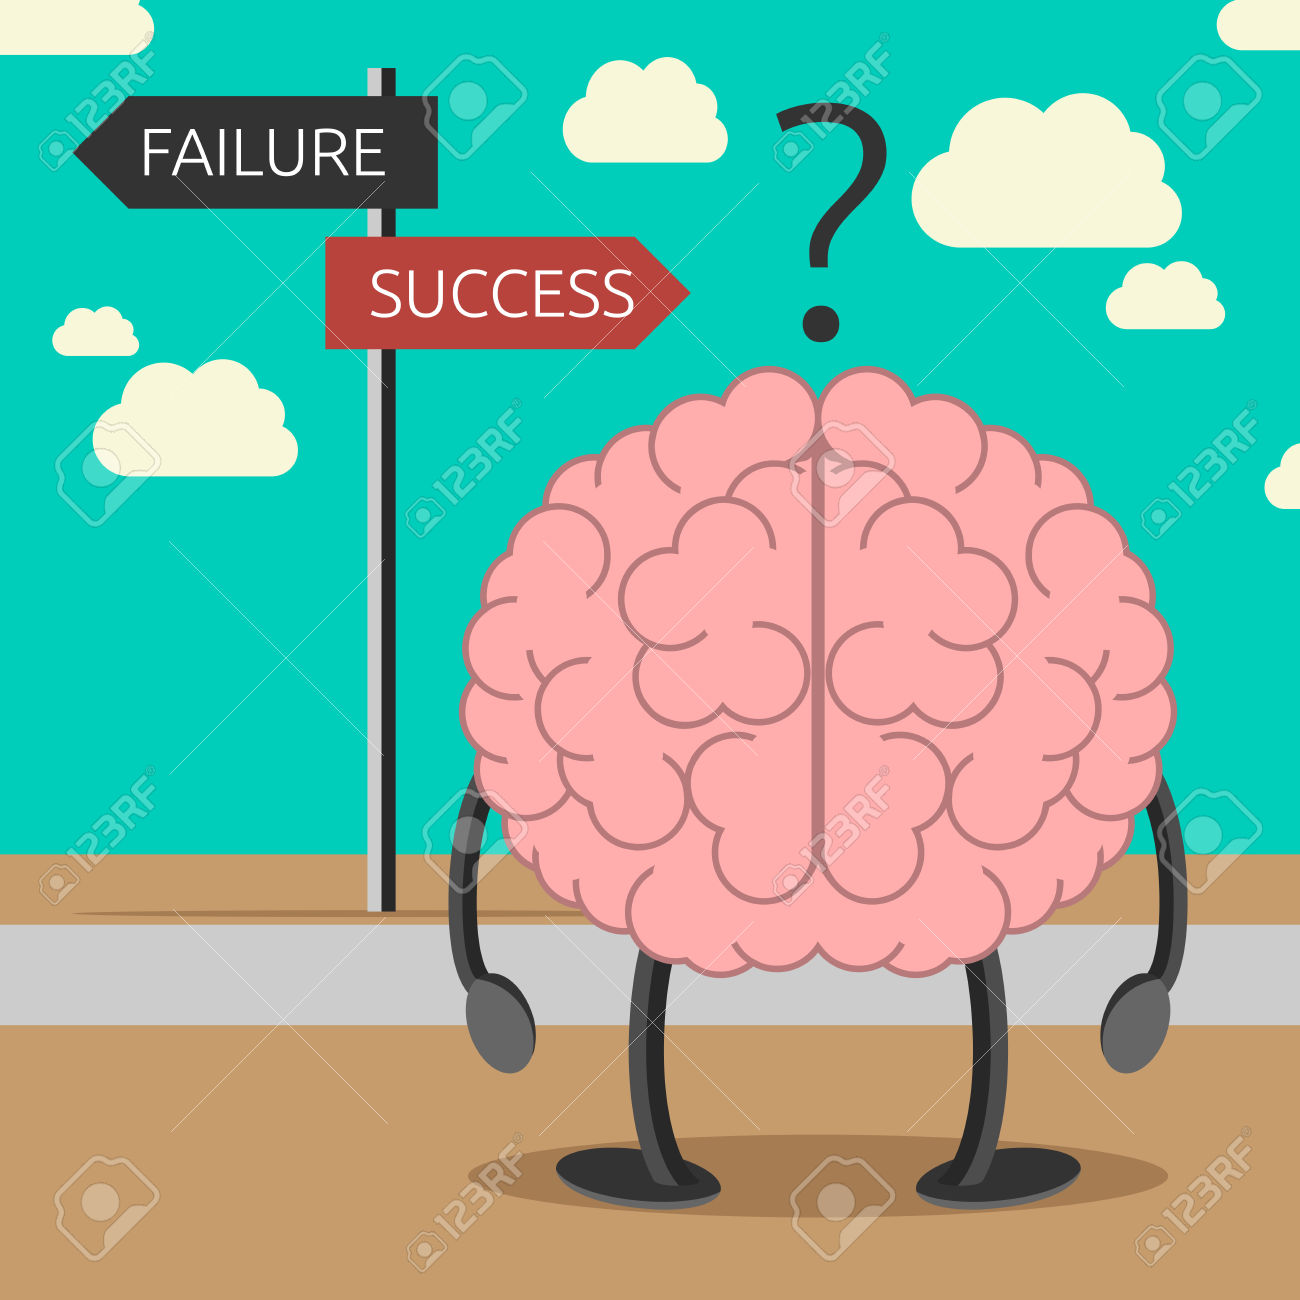 Brain Character Choosing Its Way Between Failure And Success.